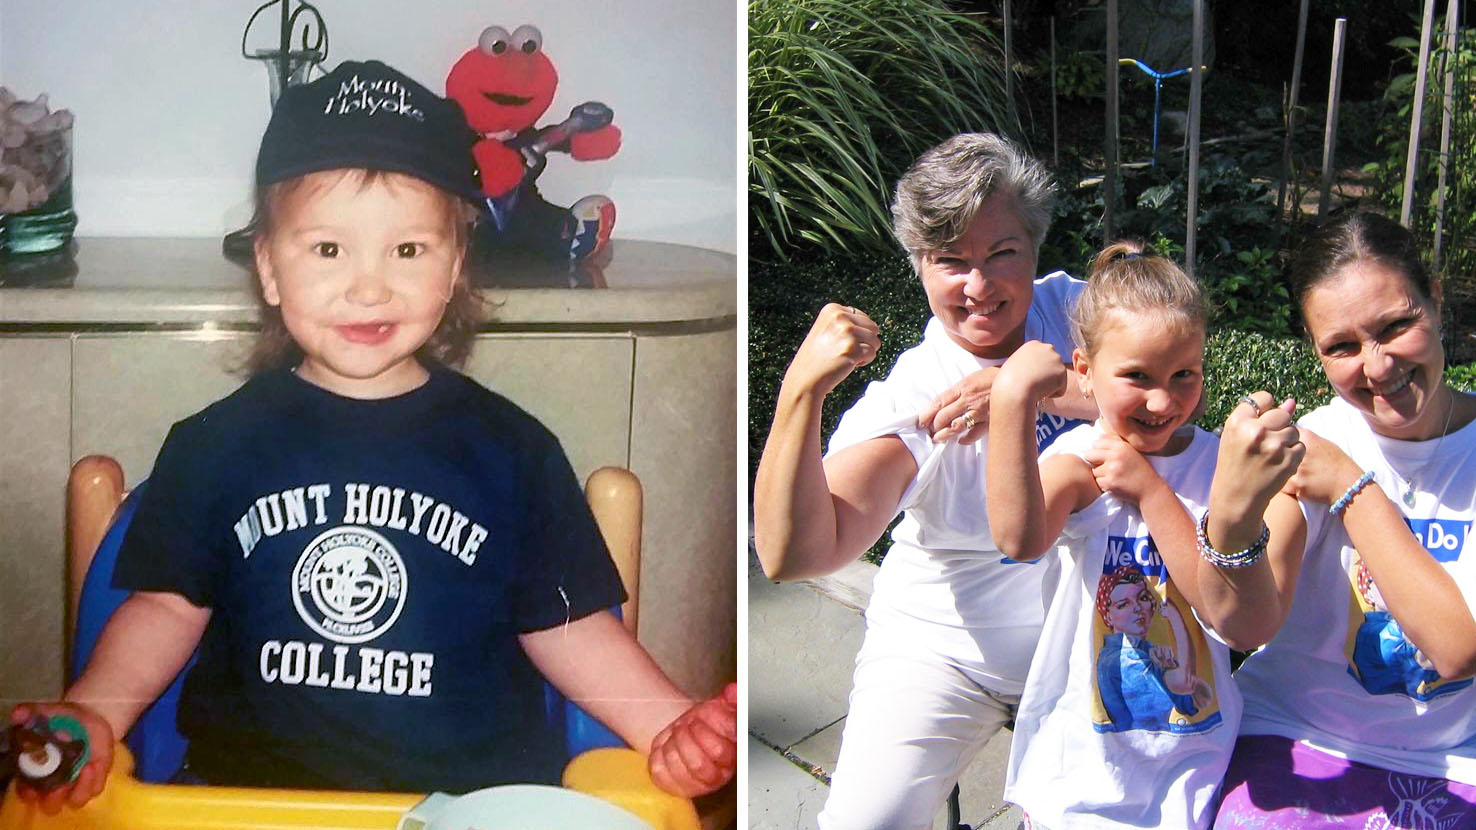 Xiomara Núñez '20, back in her Elmo days and striking a power pose with her grandmother and mom